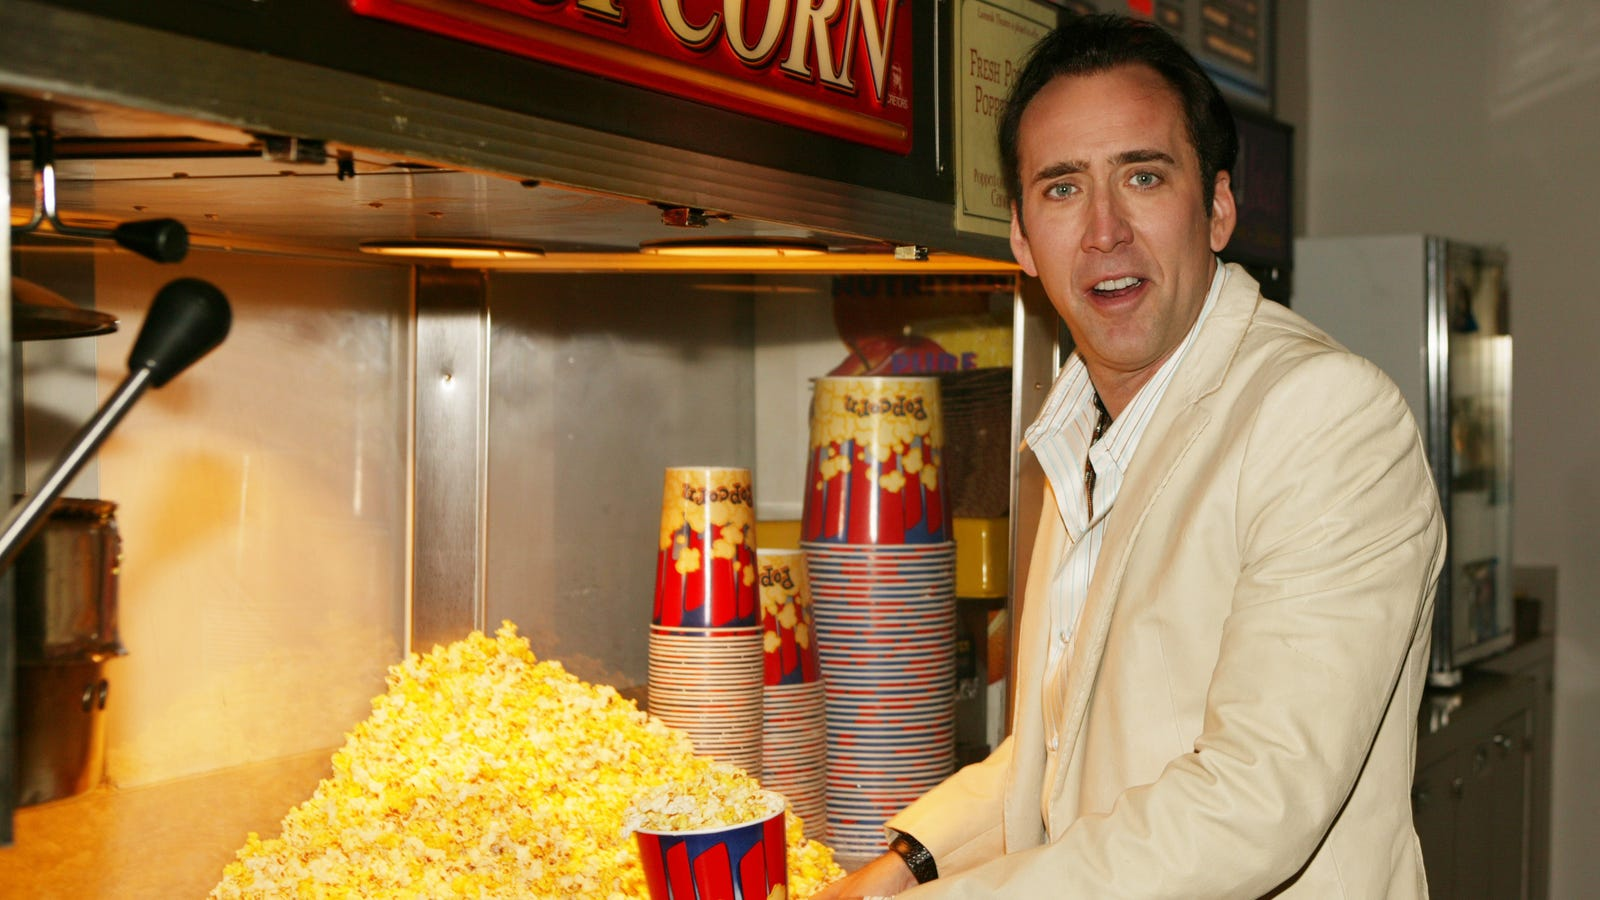 Nicolas Cage is no longer a tasty corn treat